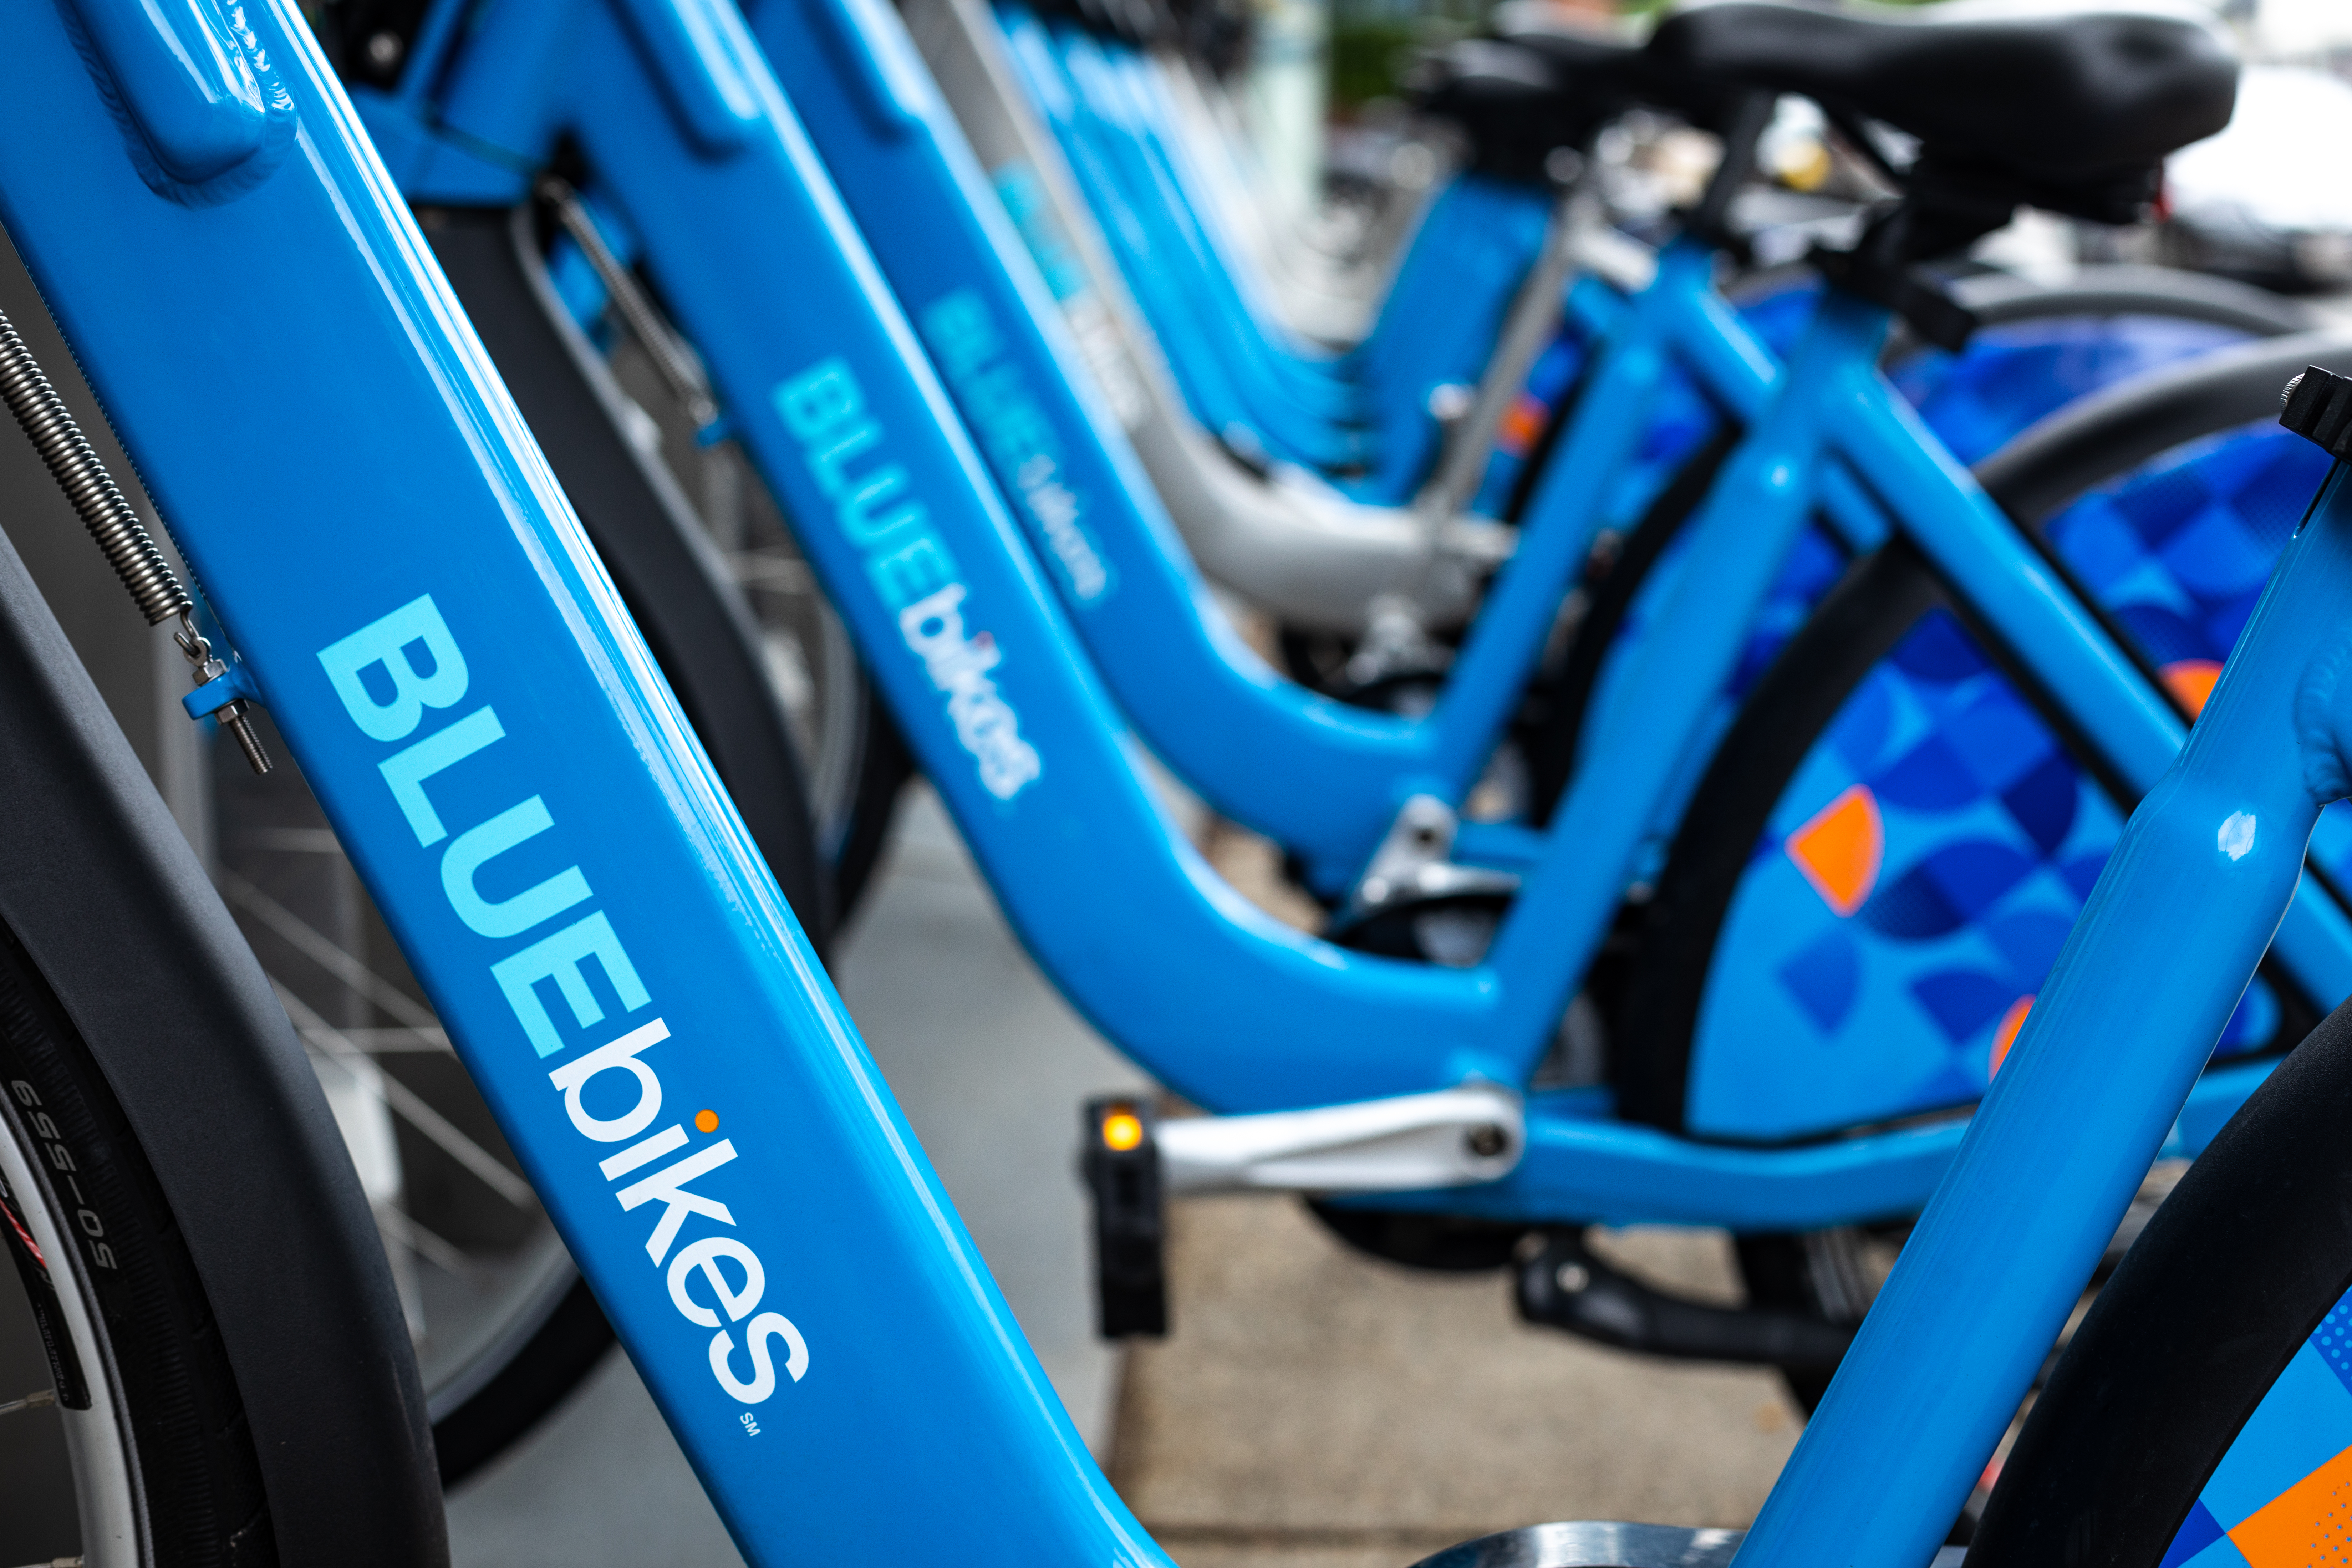 Bluebikes offering free rides on Friday as part of bike-to-work promotion